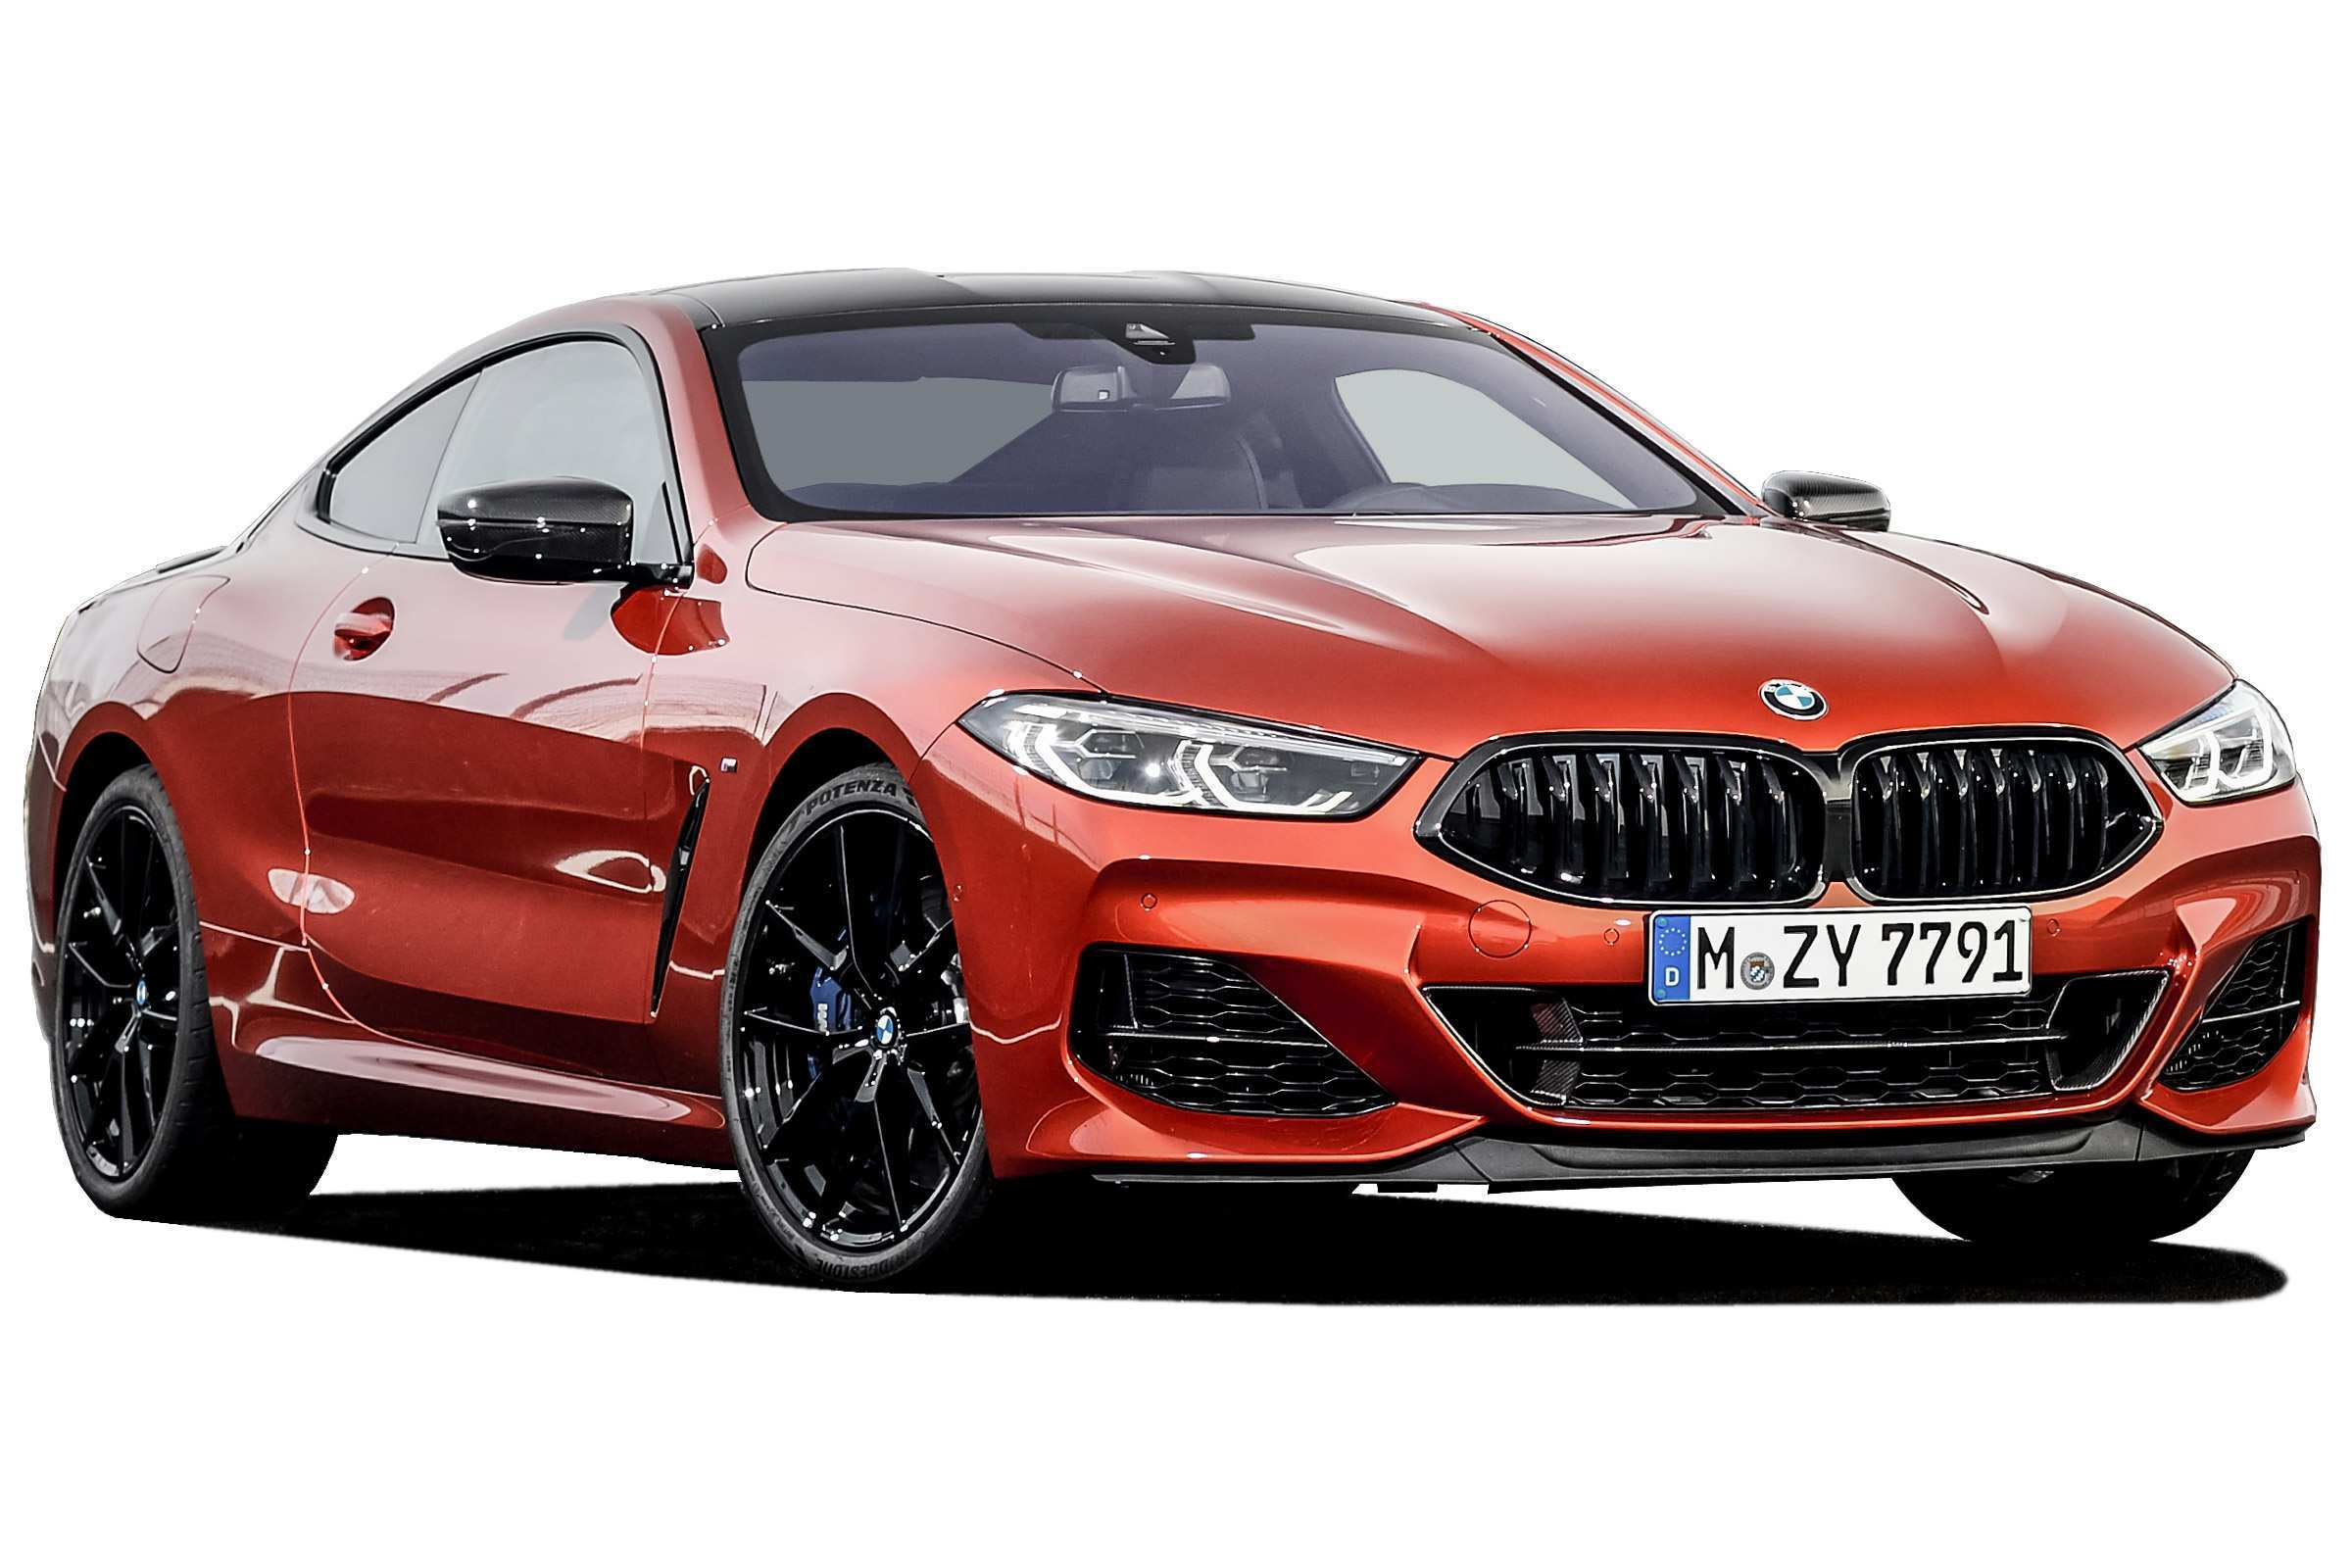 41 All New 2019 Bmw 8 Series Interior Release Date and Concept